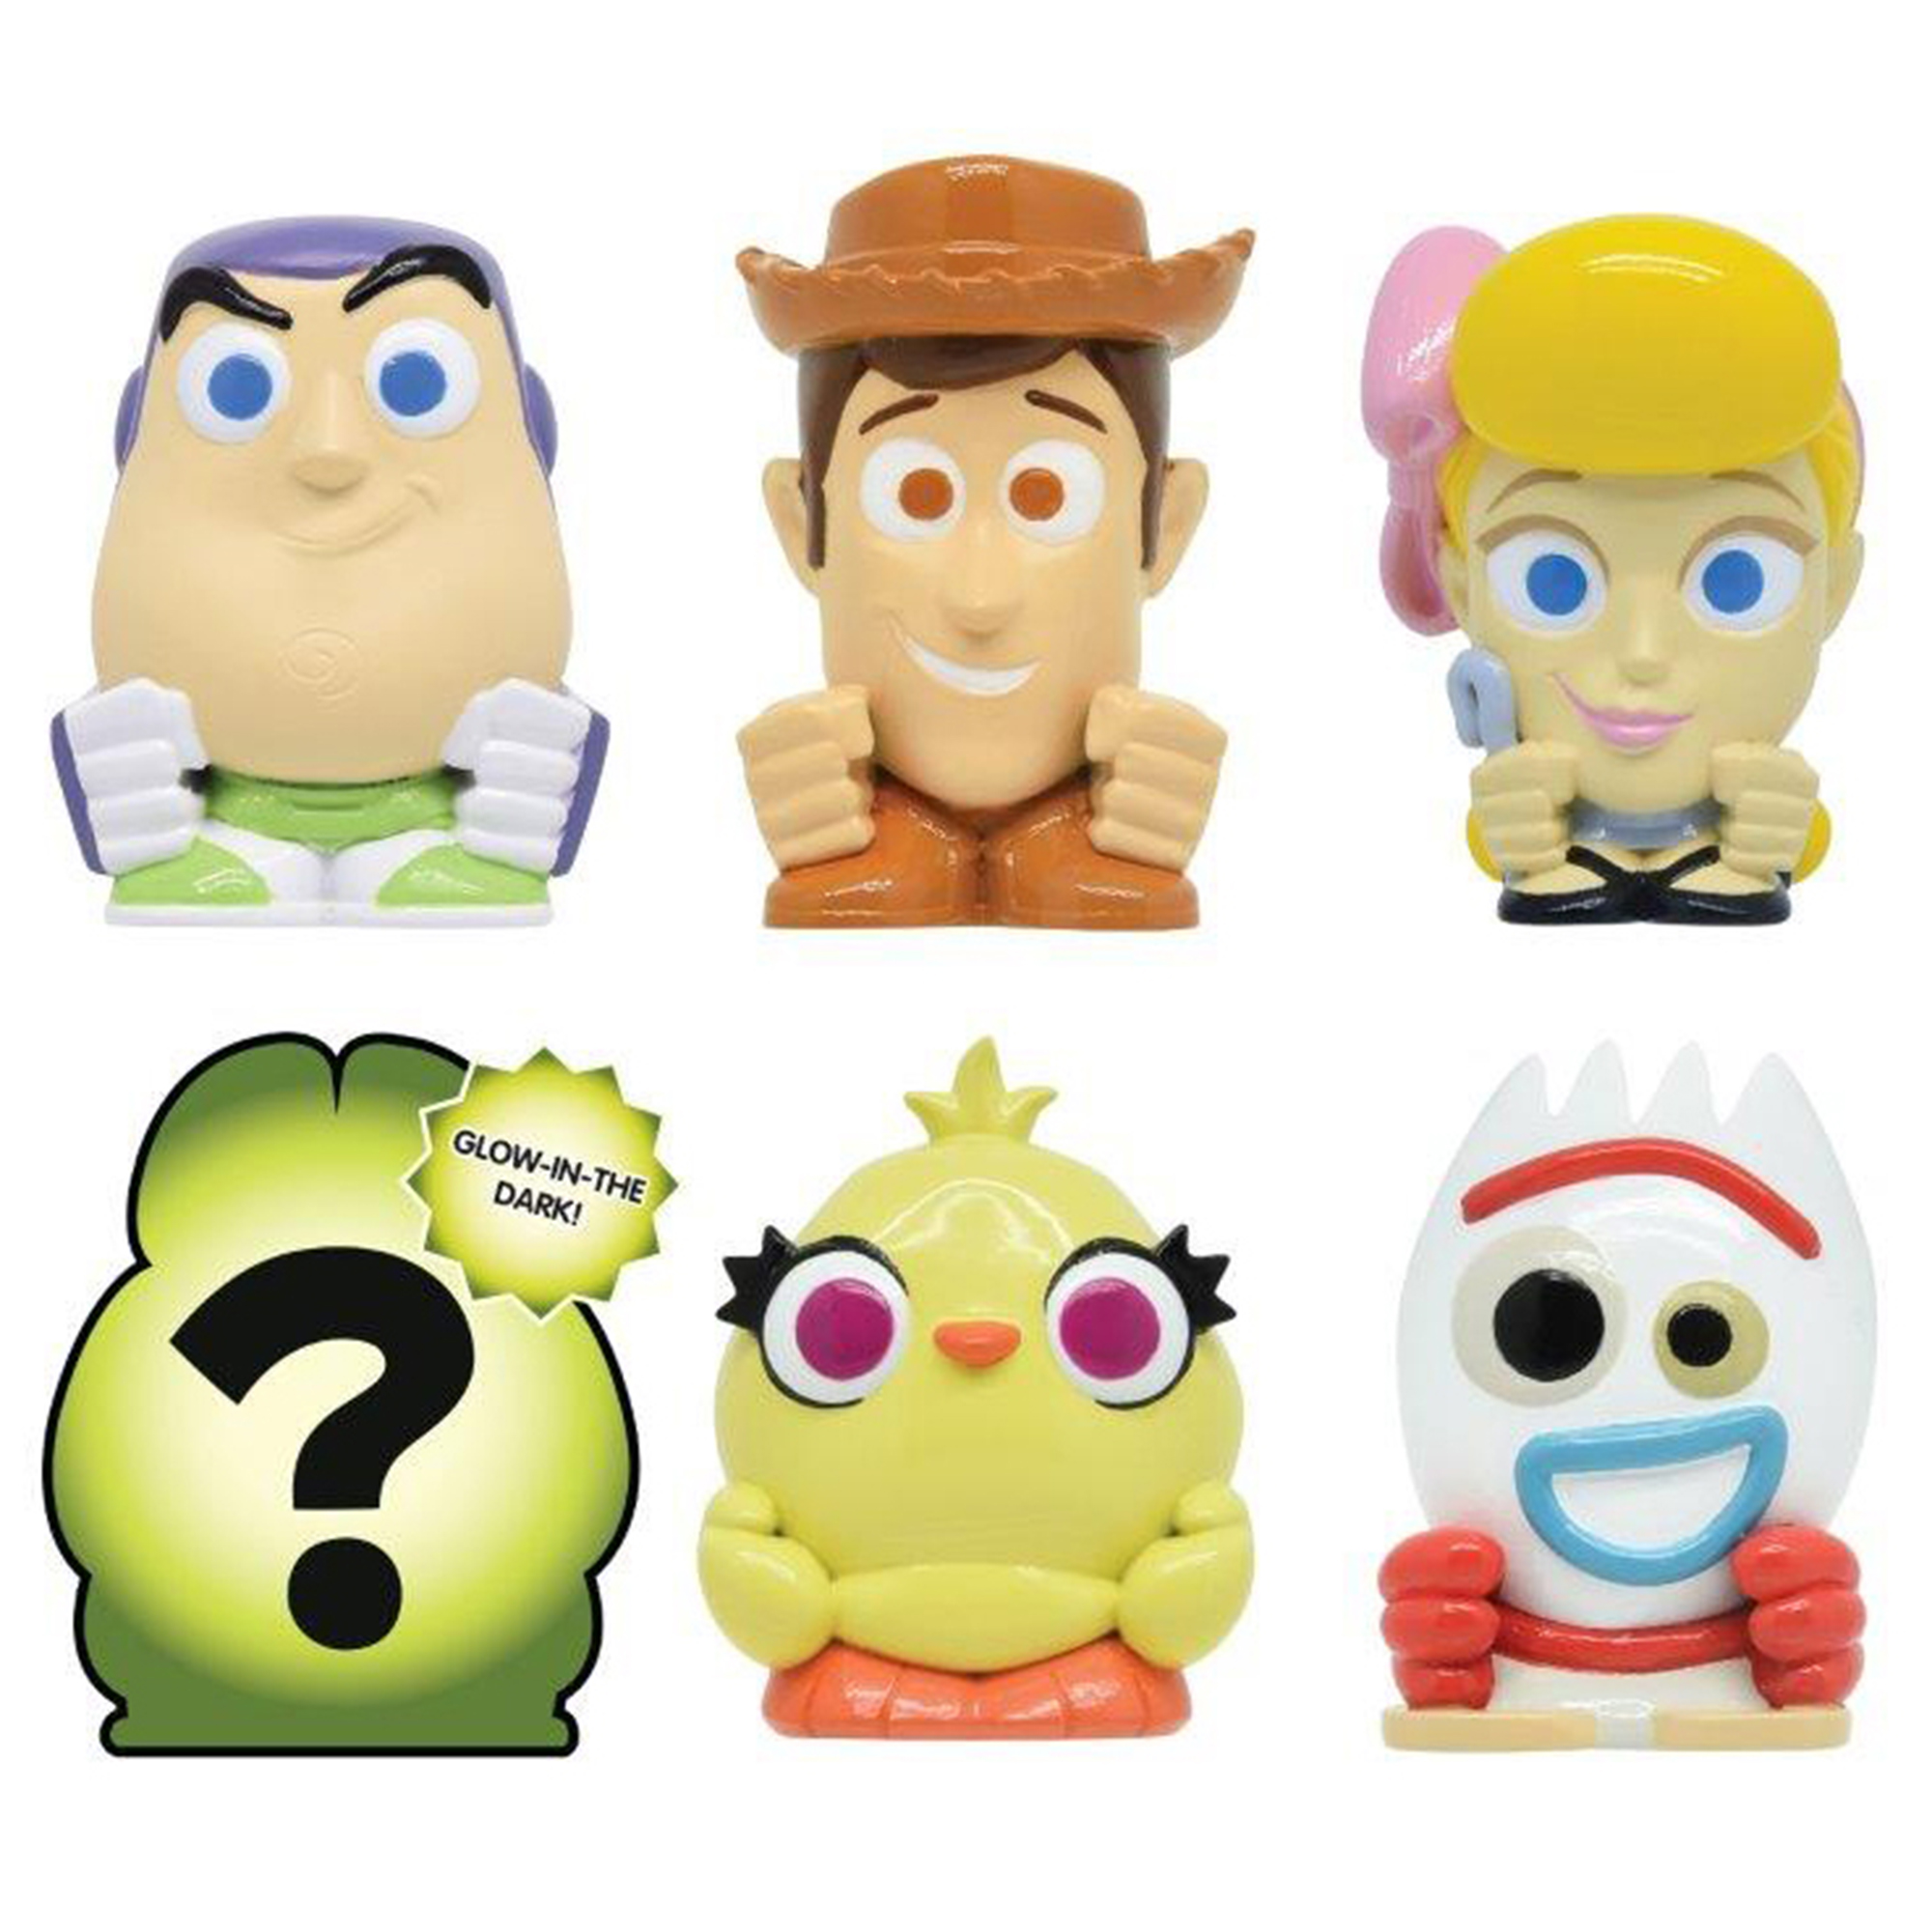 Picture of Toy Story 4 Mash'ems Assortment